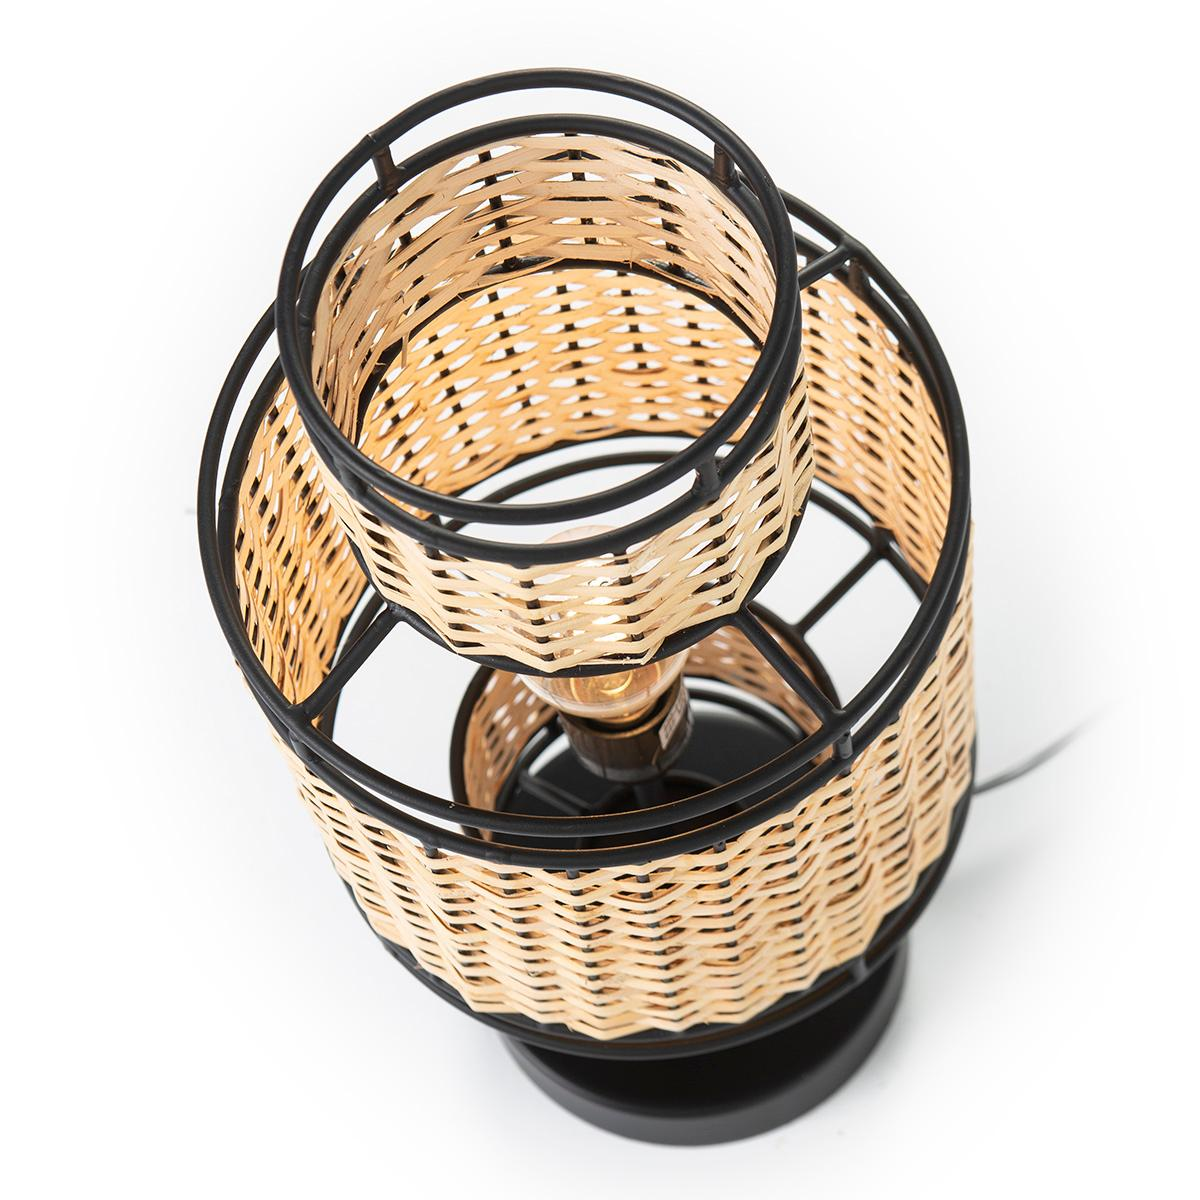 Candeeiro de Mesa Metal Preto/Rattan Natural TH618371